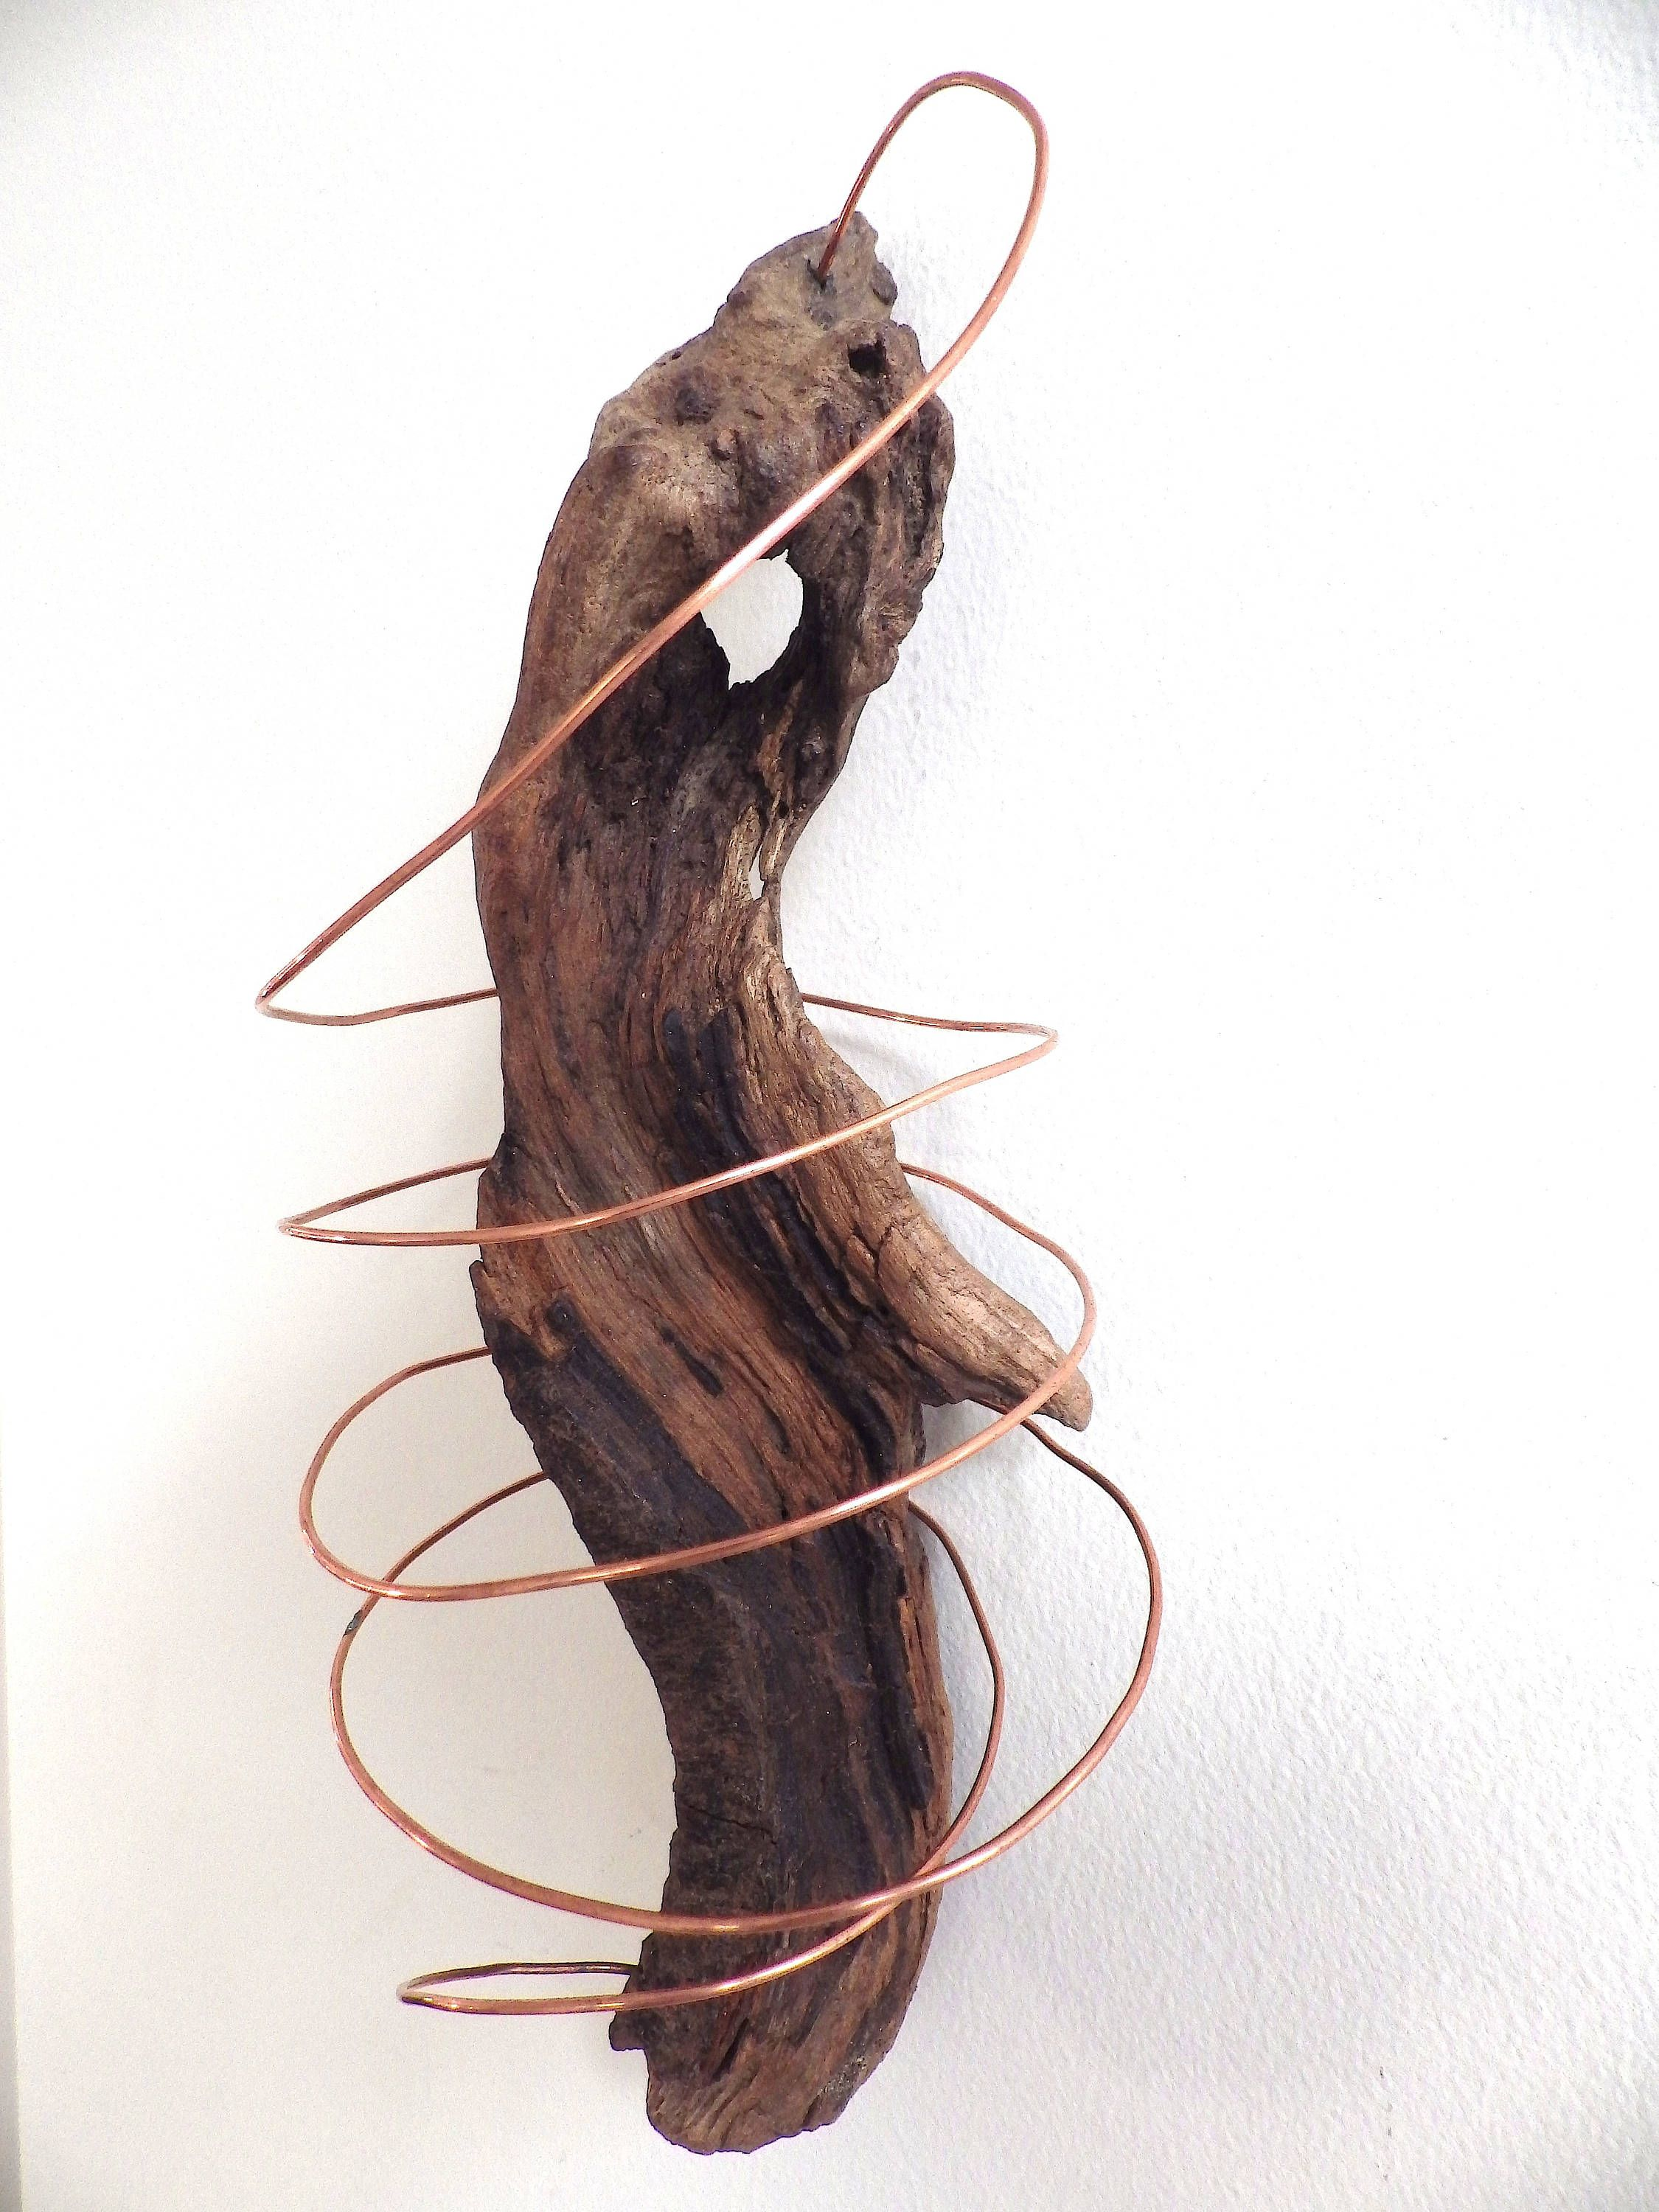 Excited to share the latest addition to my etsy shop driftwood